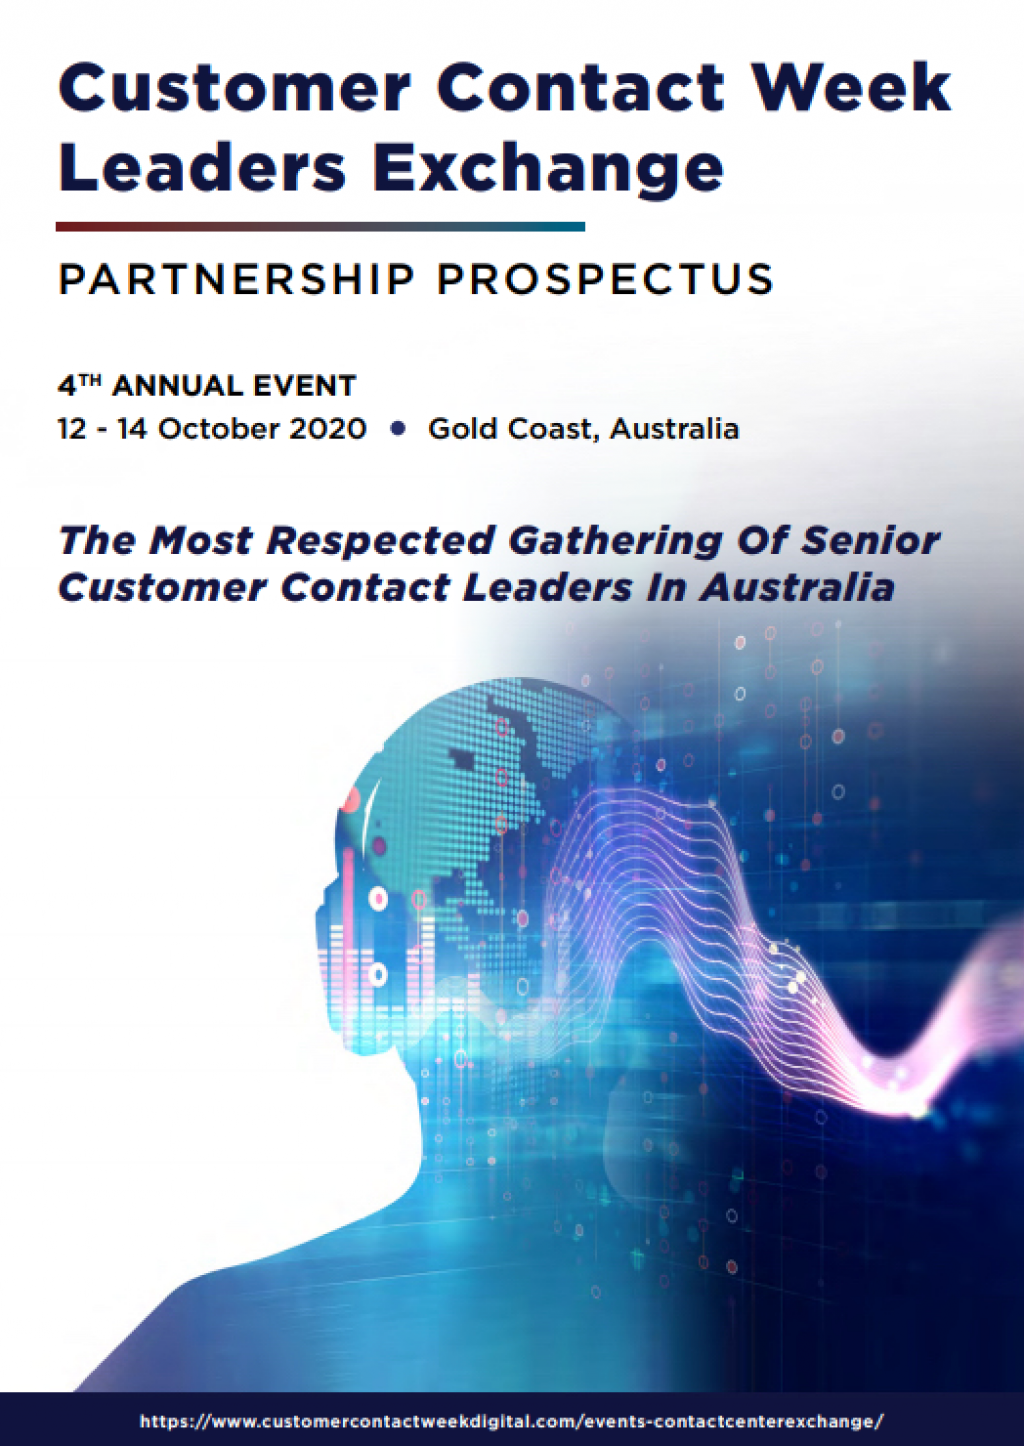 Customer Contact Leaders Exchange 2020 - Partnership Prospectus